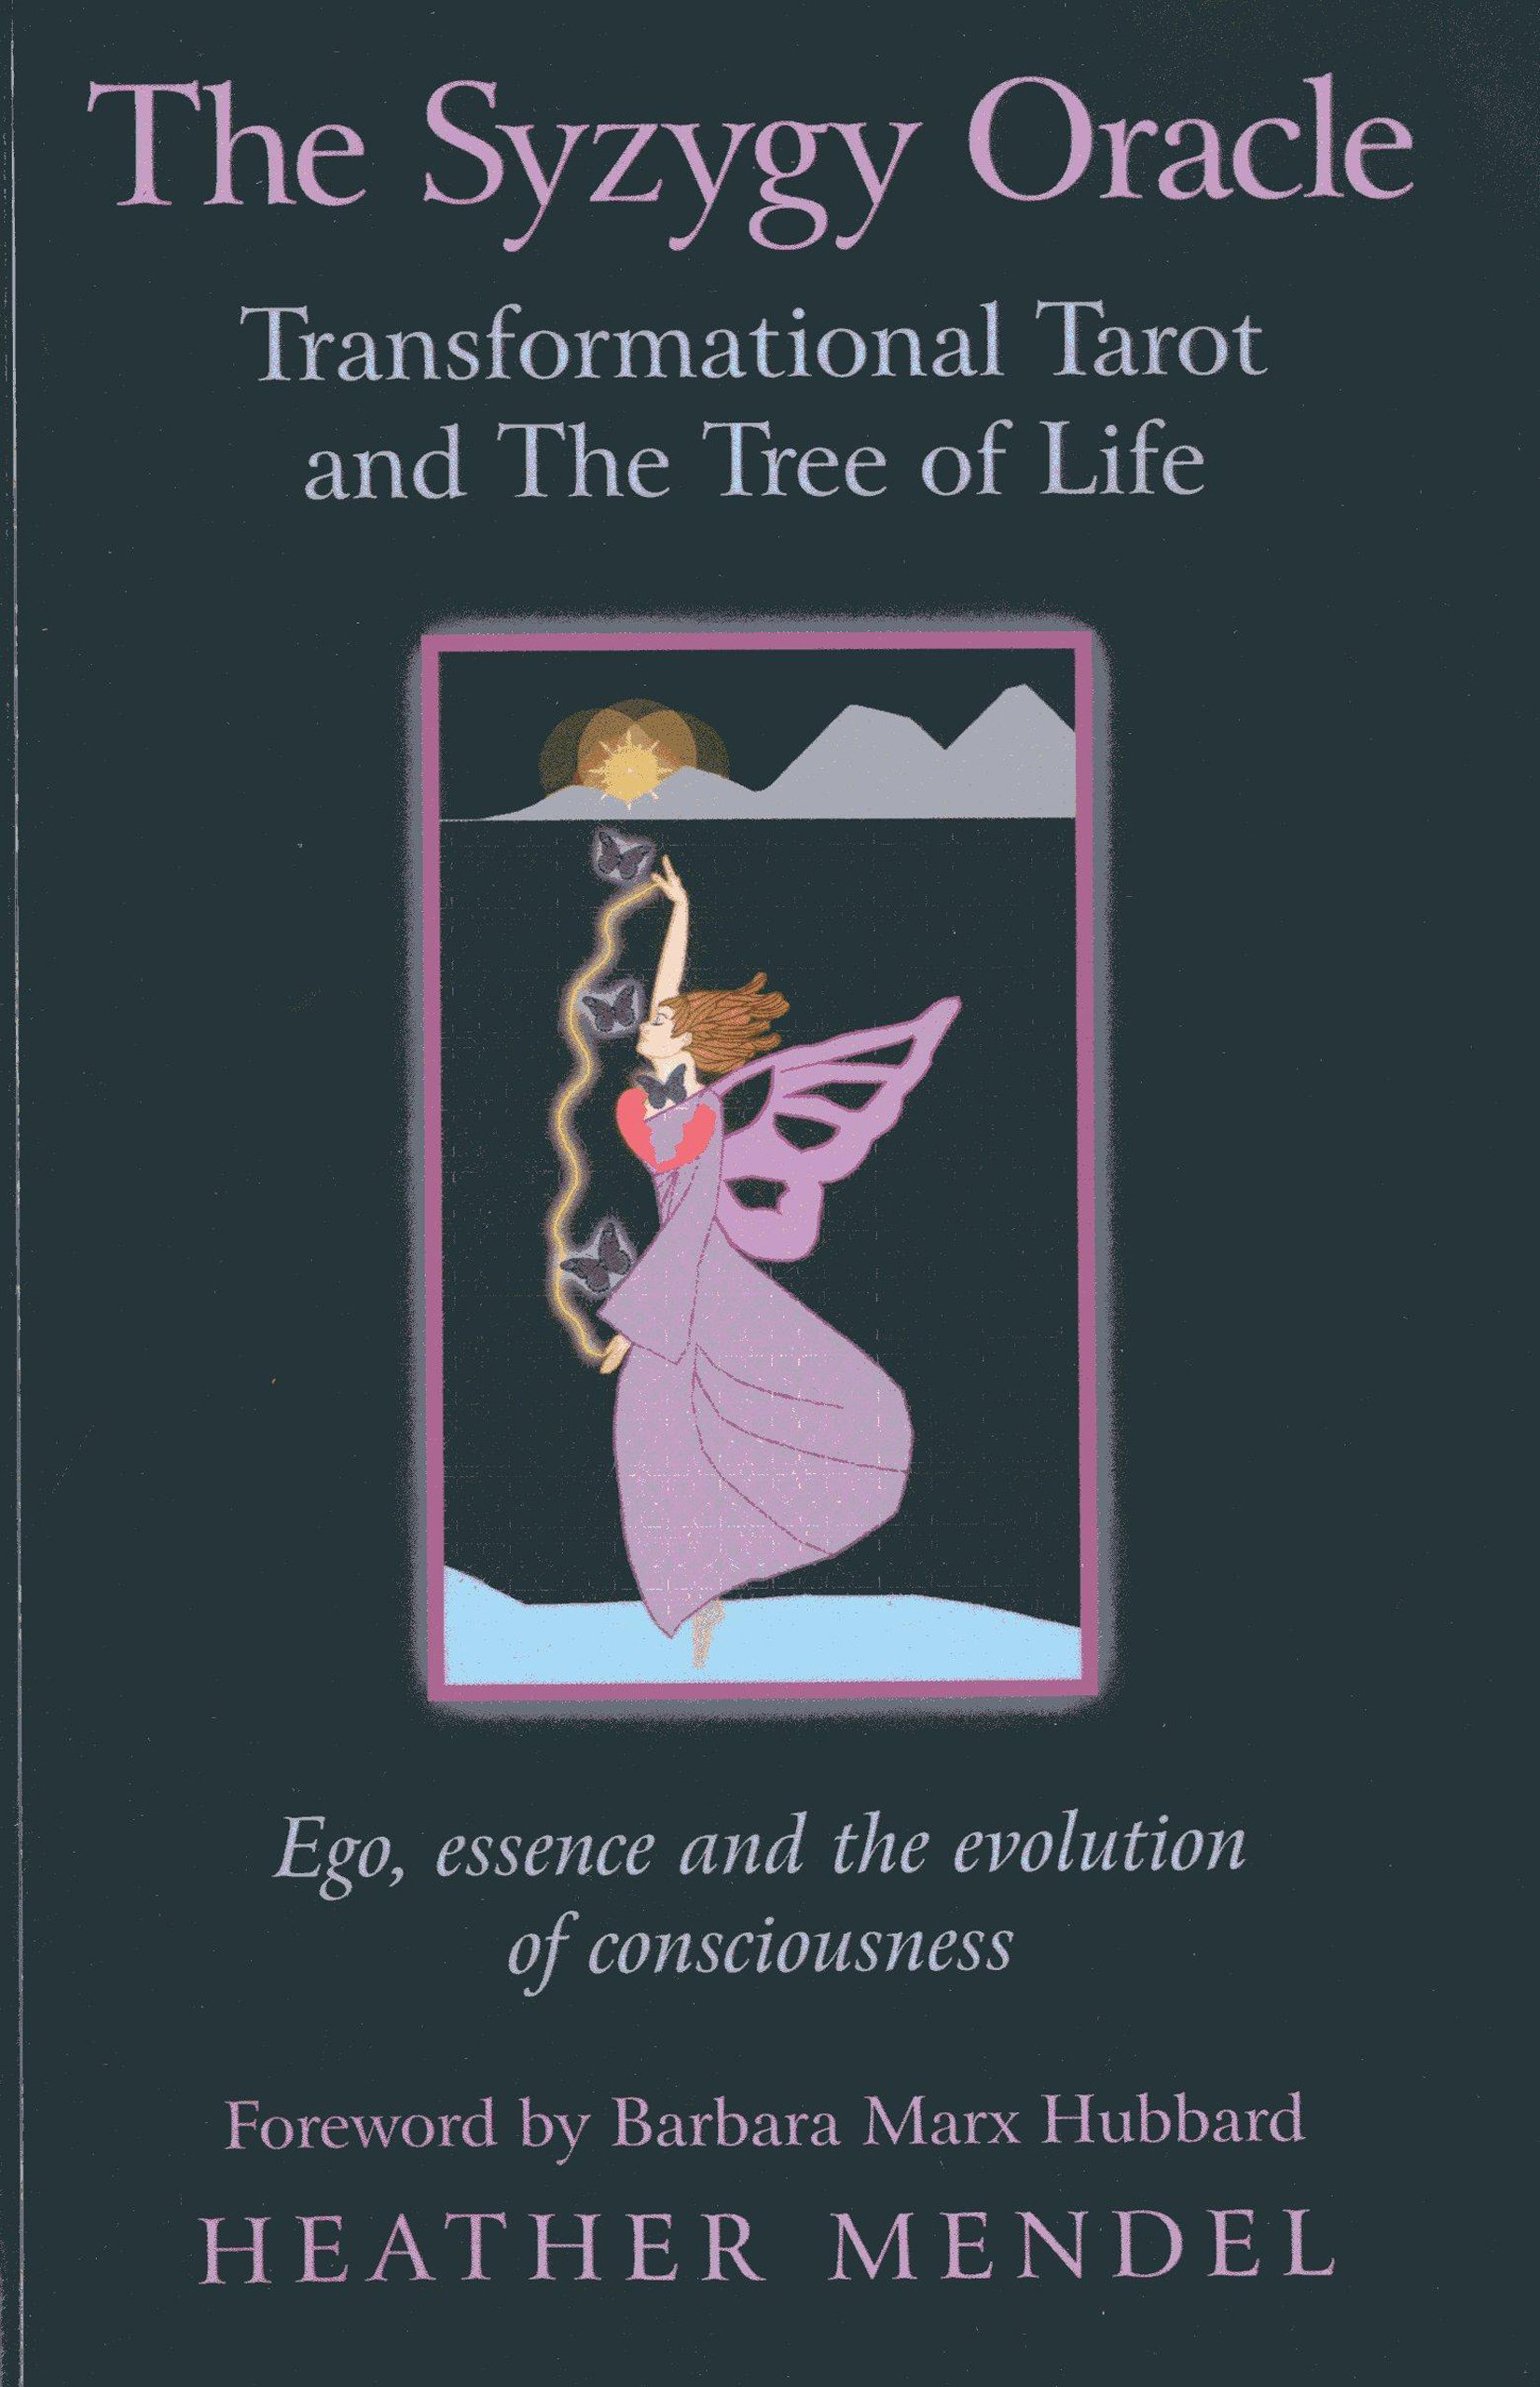 The Syzygy Oracle - Transformational Tarot and The Tree of Life: Ego, Essence and the Evolution of Consciousness